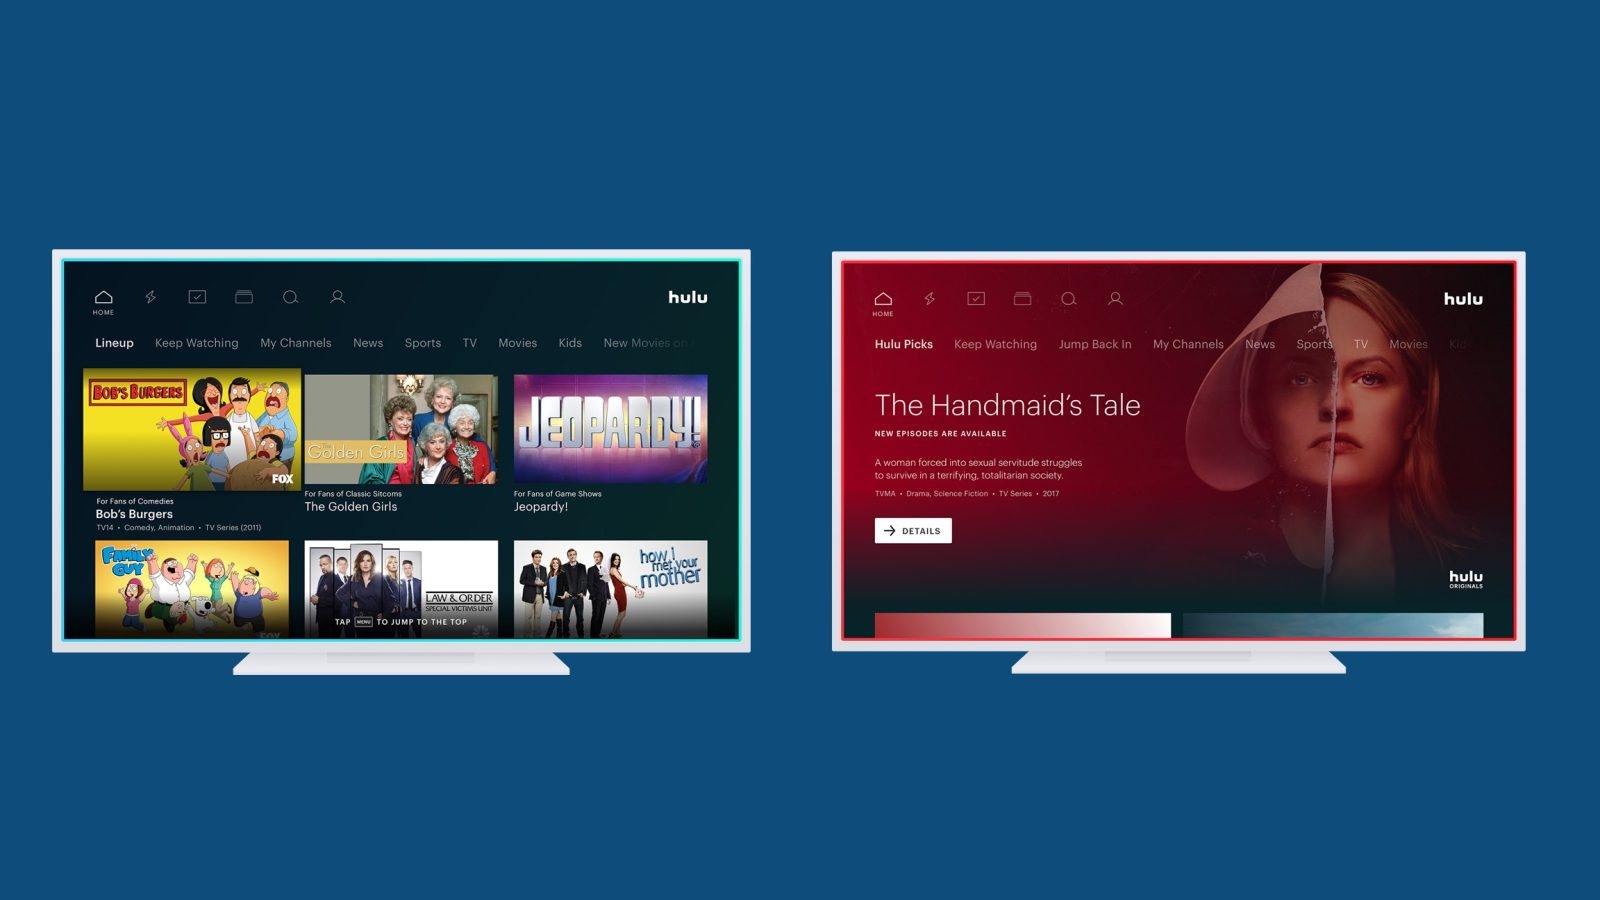 Hulu app to be redesigned with new hompage, more - 9to5Mac